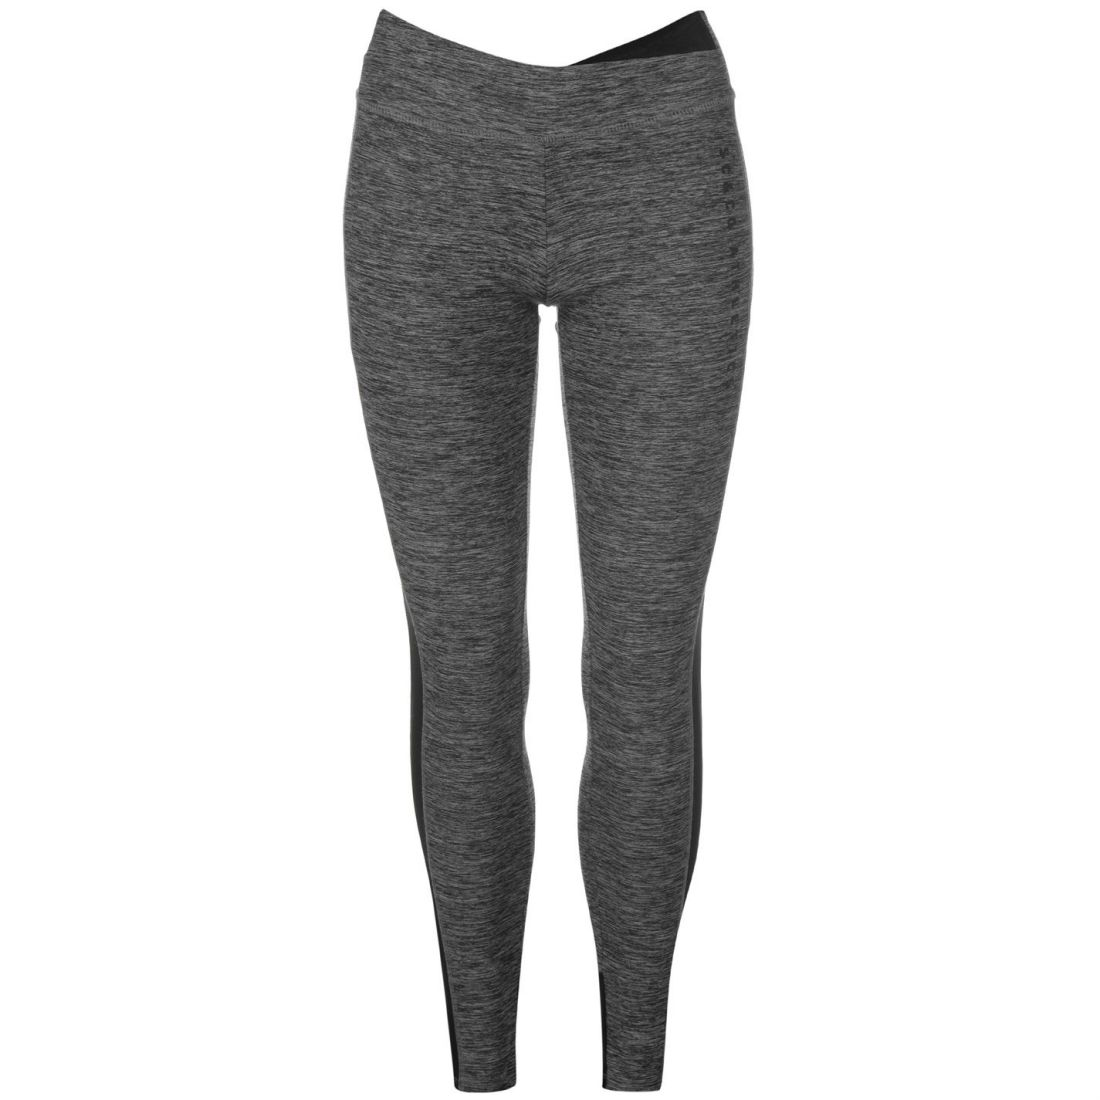 cc5d8243afcd7 Image is loading Womens-SoulCal-Deluxe-Cross-Band-Leggings-Mesh-New